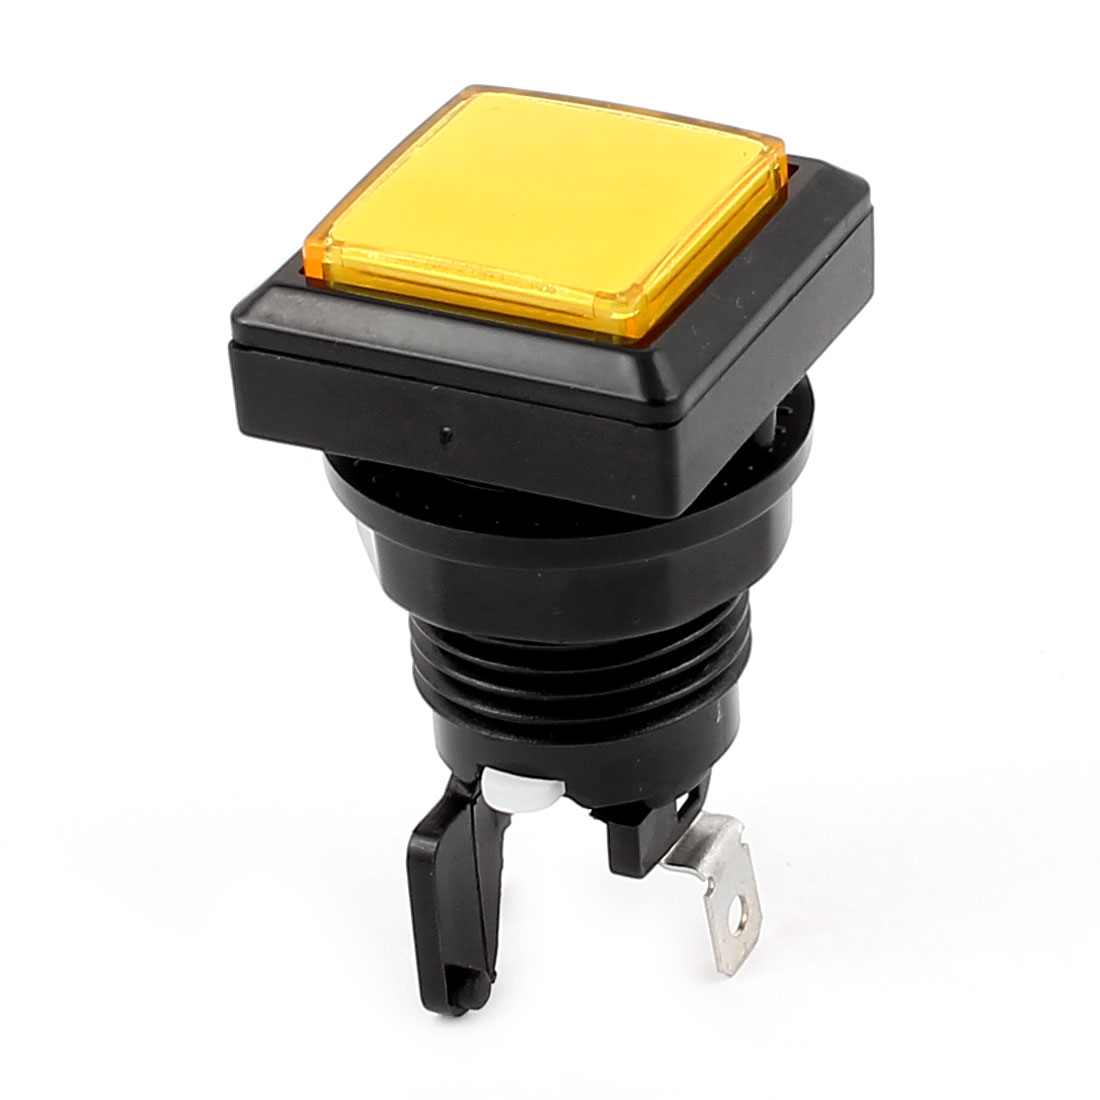 UXCELL Contact Type Yellow Square Cap Momentary Push Button Switch For Gaming Machine Wi ...